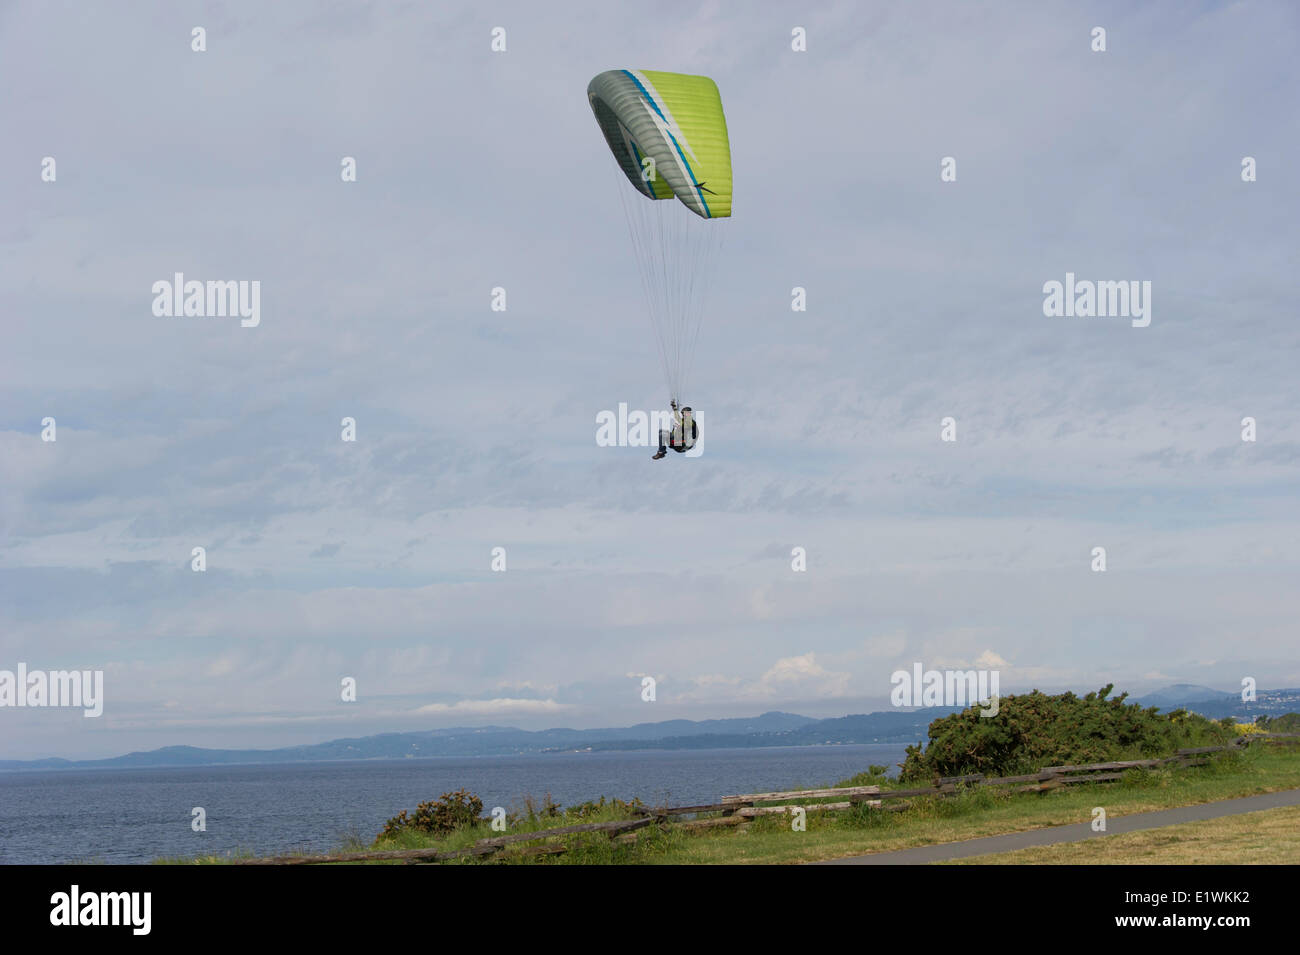 Sport Flying Paragliding Is The Recreational Competitive Adventure Sport Flying